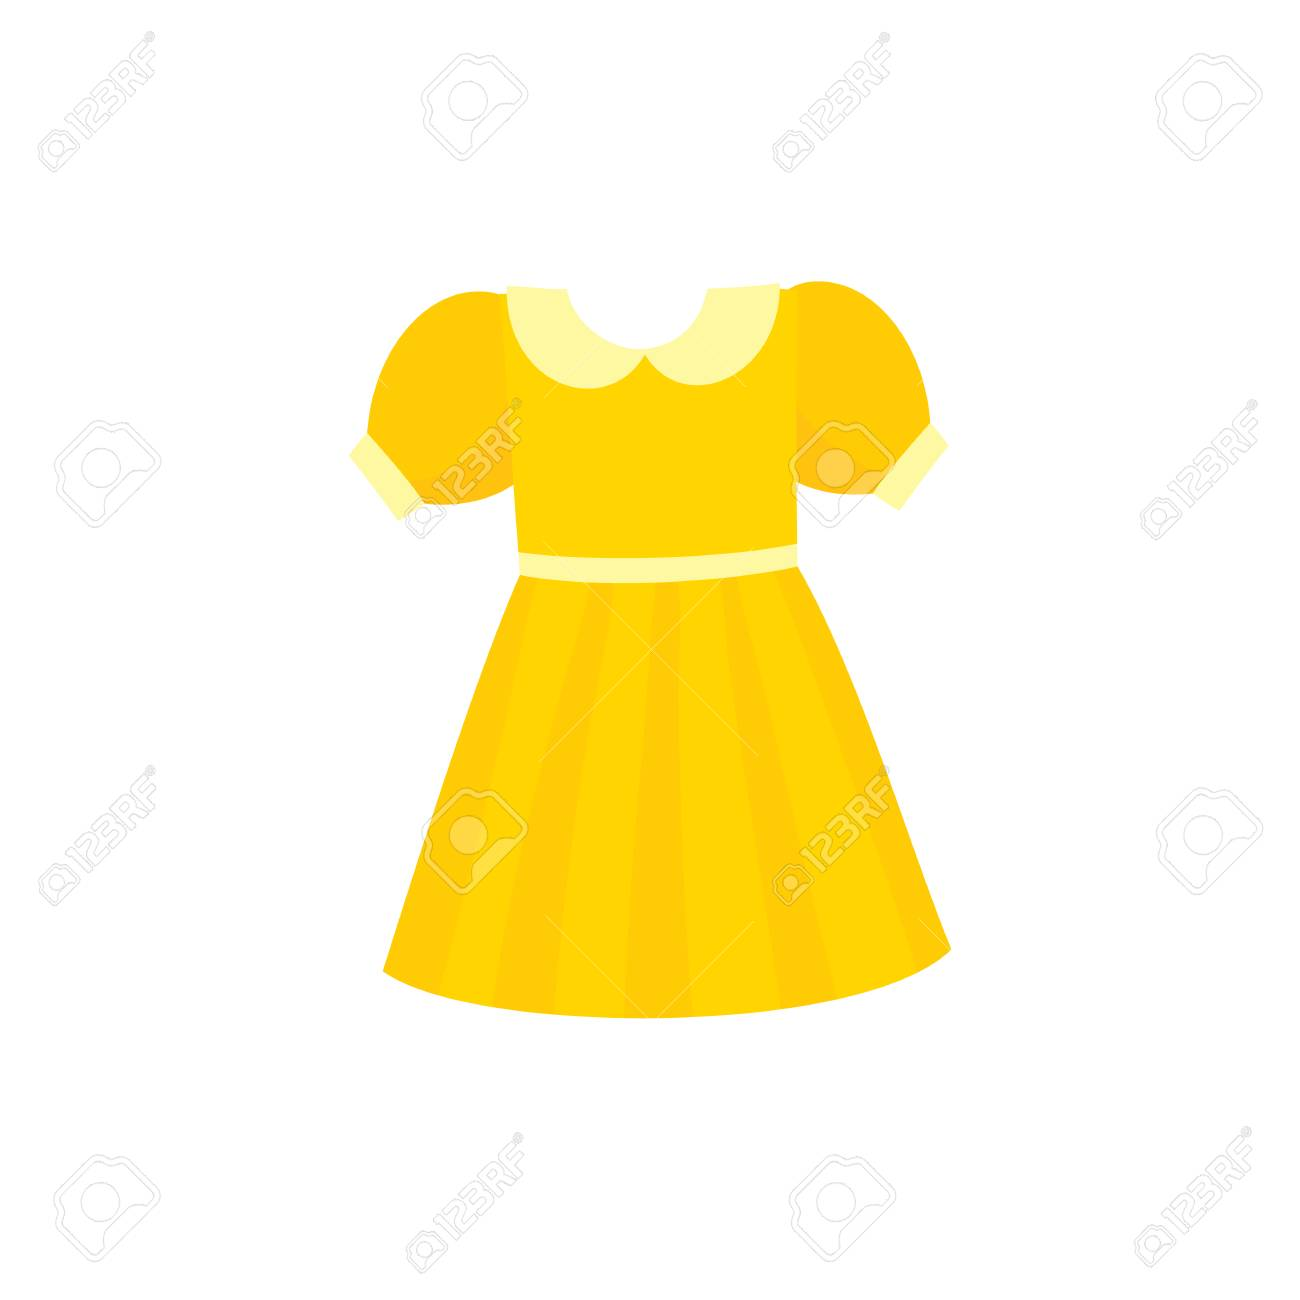 Yellow flare dress with round collar and balloon sleeves, cartoon vector illustration isolated on white background. Pretty girlish dress with round collar, flare dress, belt and balloon sleeves - 89875520